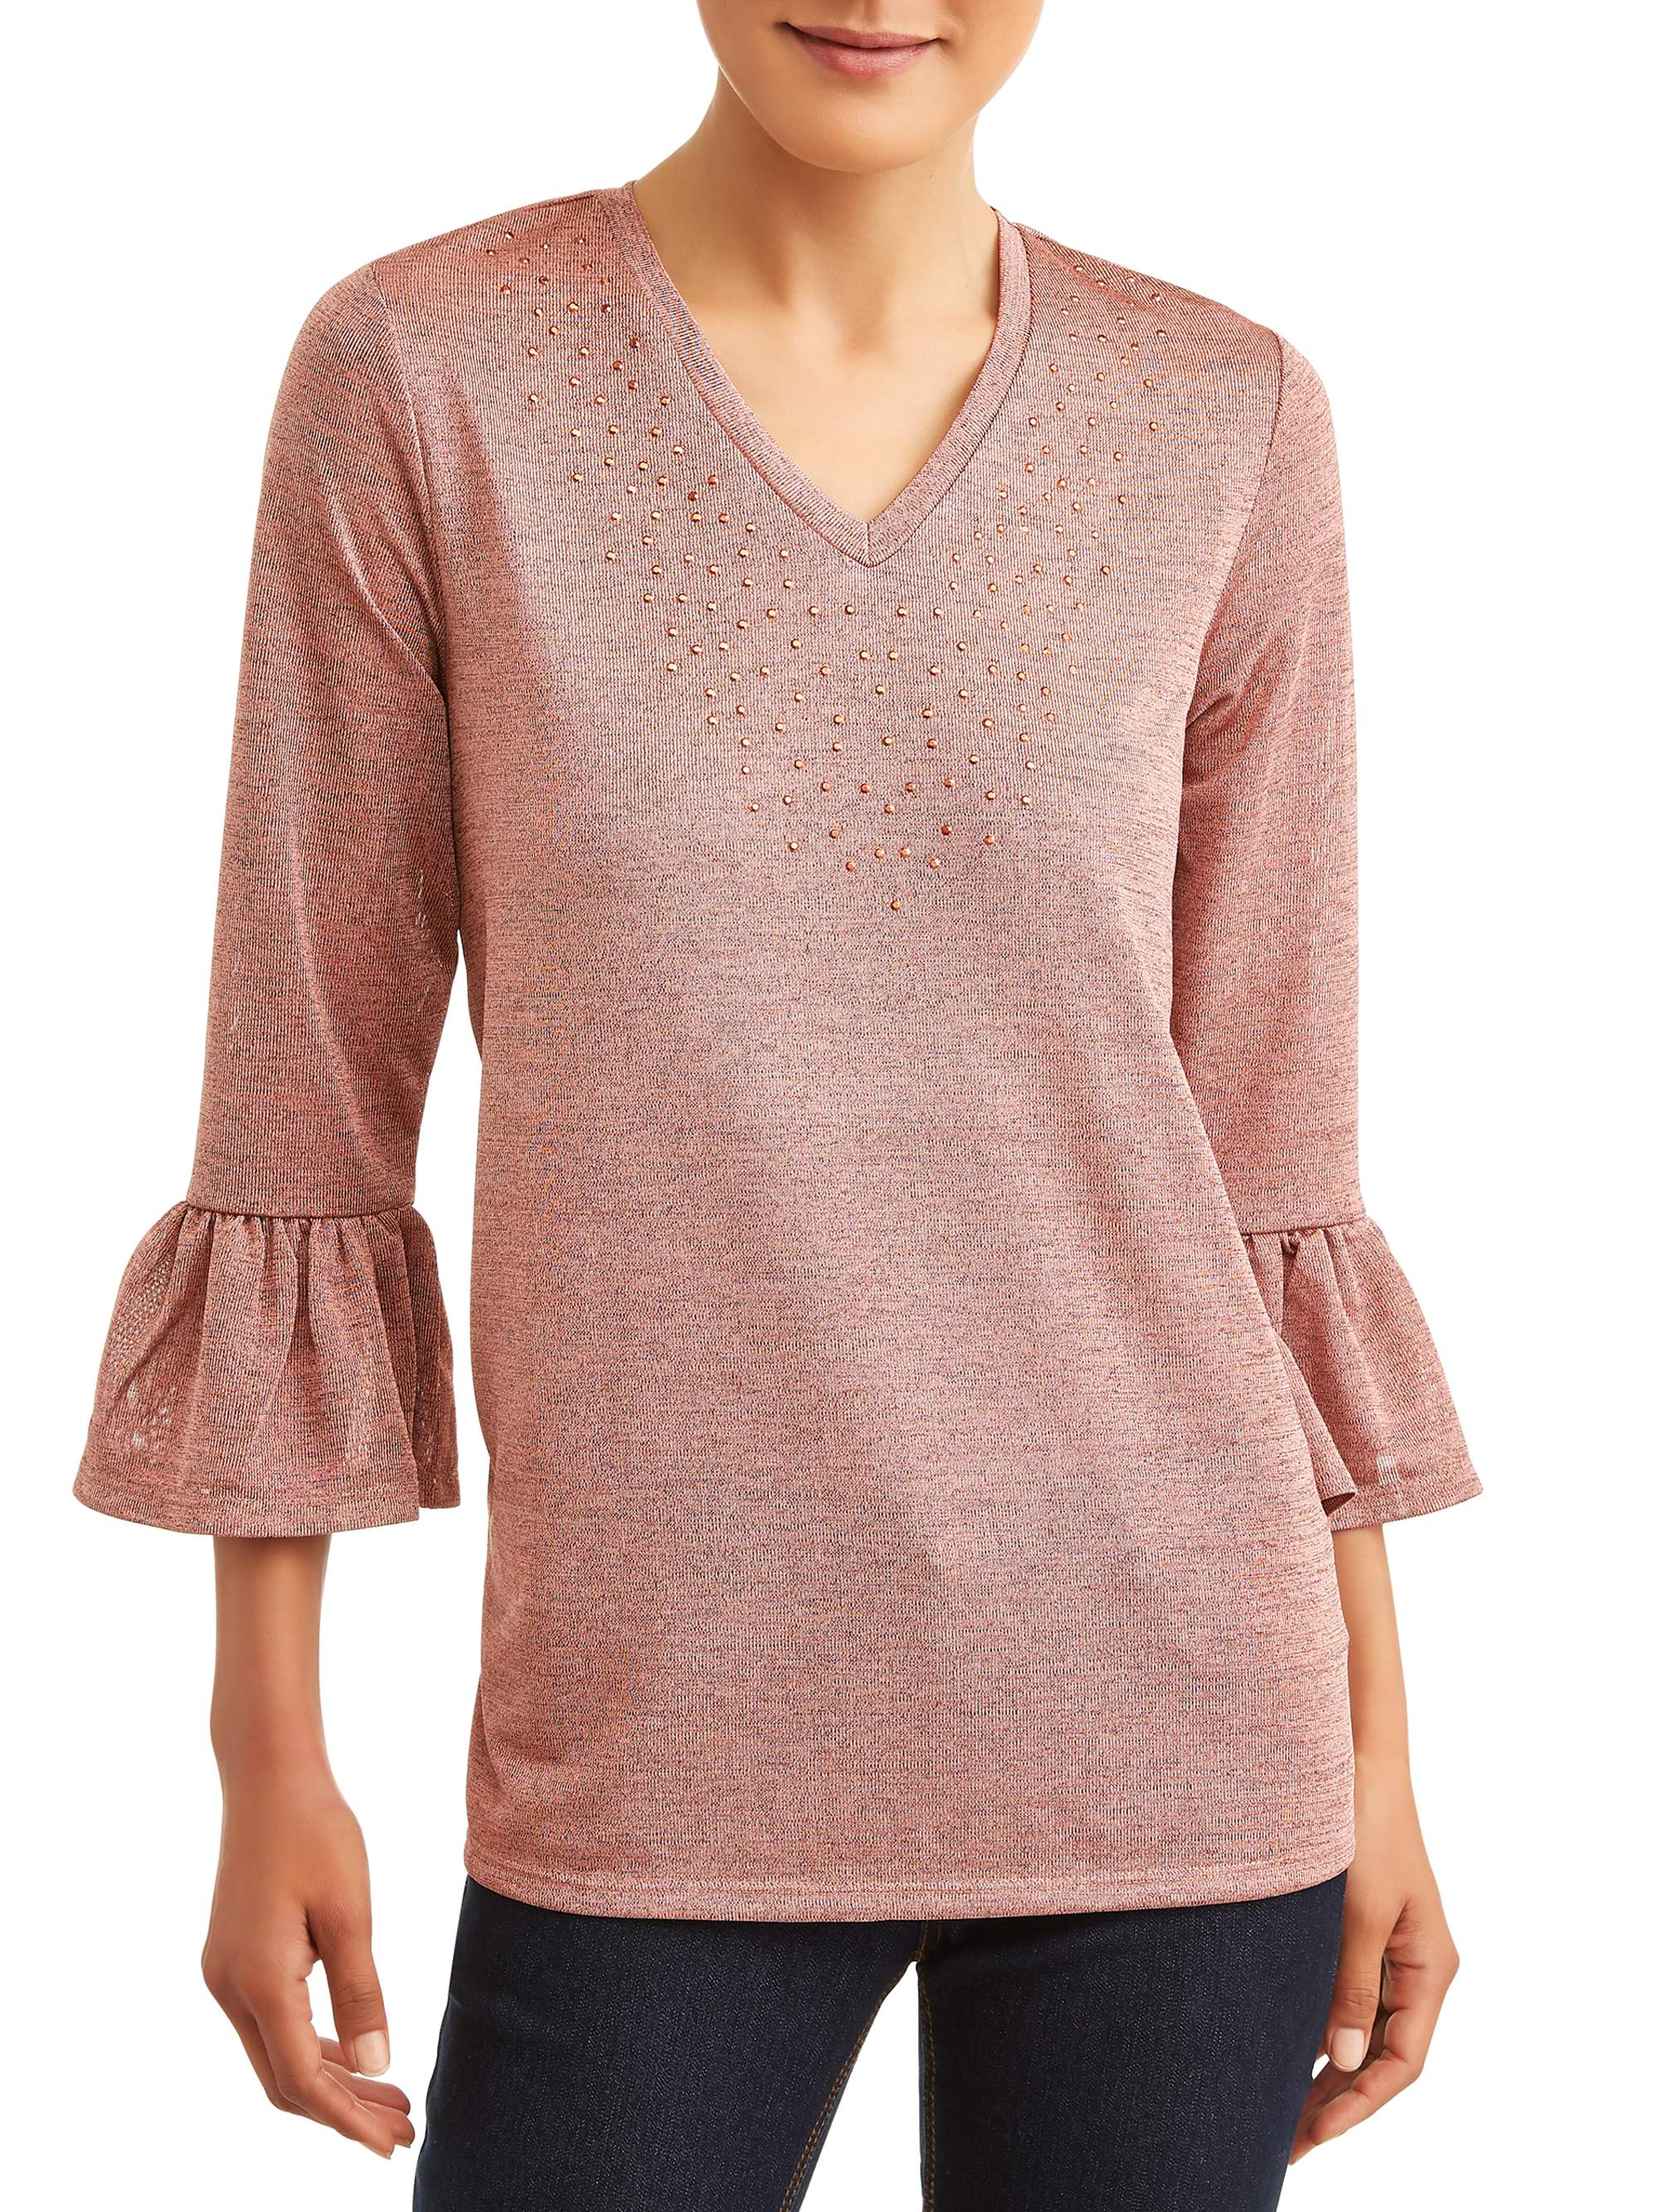 Women's Embellished Frill Sleeve Top